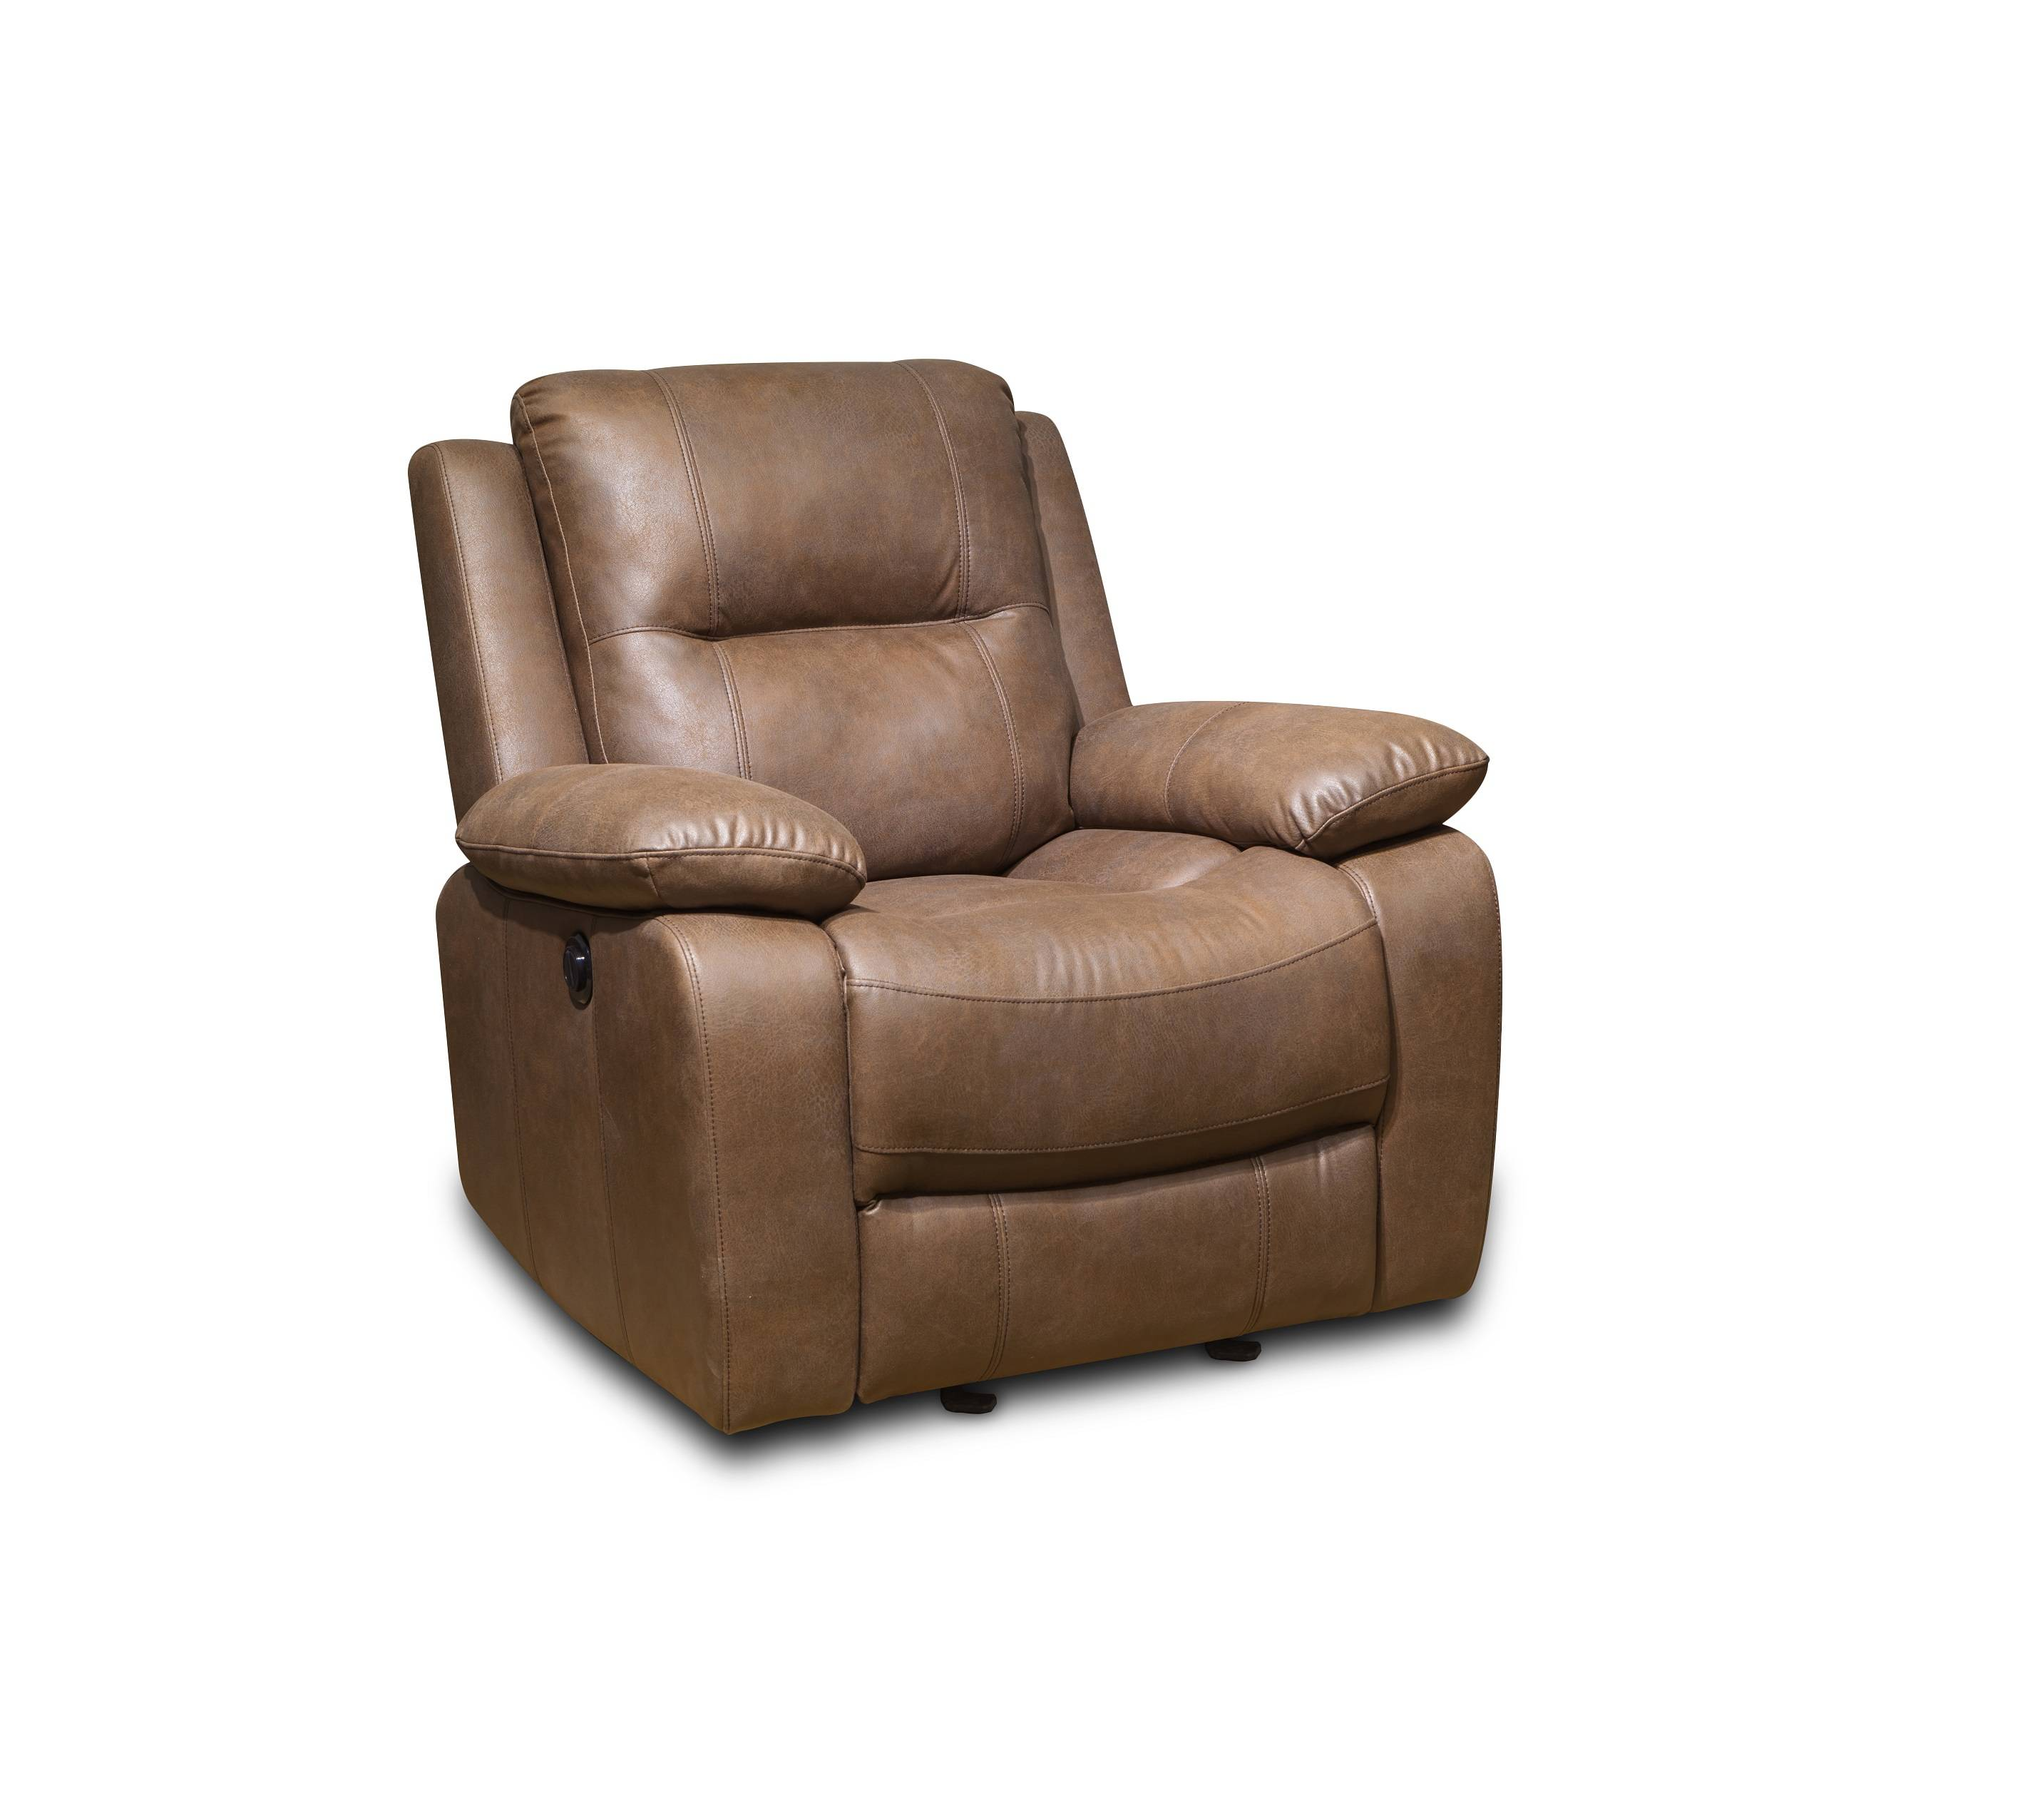 Fancy living room furniture electric rocking recliner sofa chair